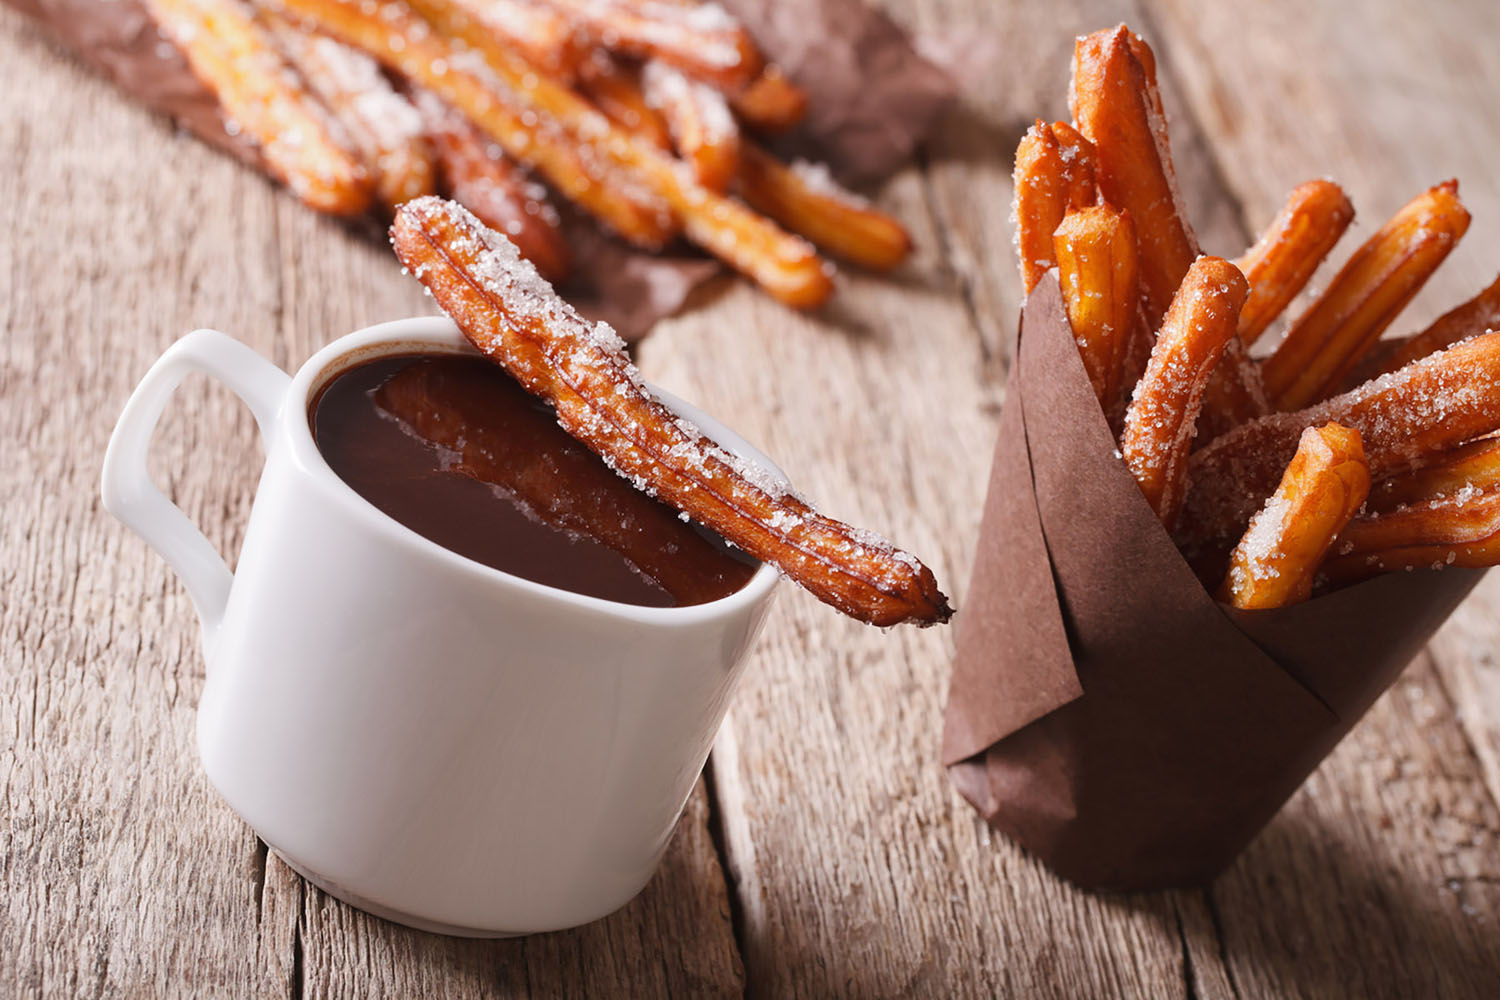 Cap off an evening out in Spain by enjoying some churros (fried pastries) with a mug of thick hot chocolate.